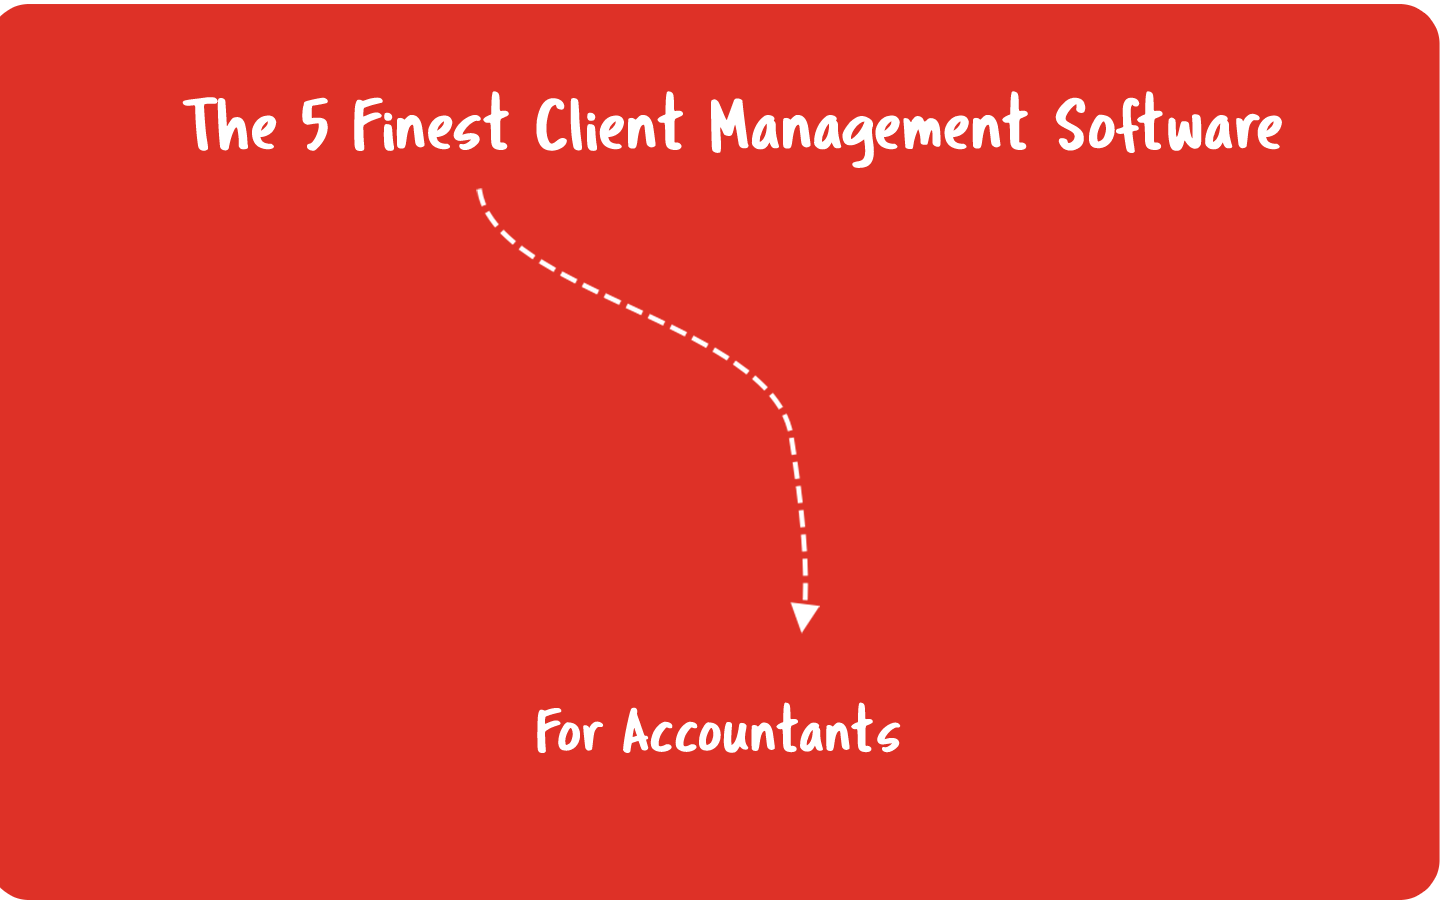 crm for accountants